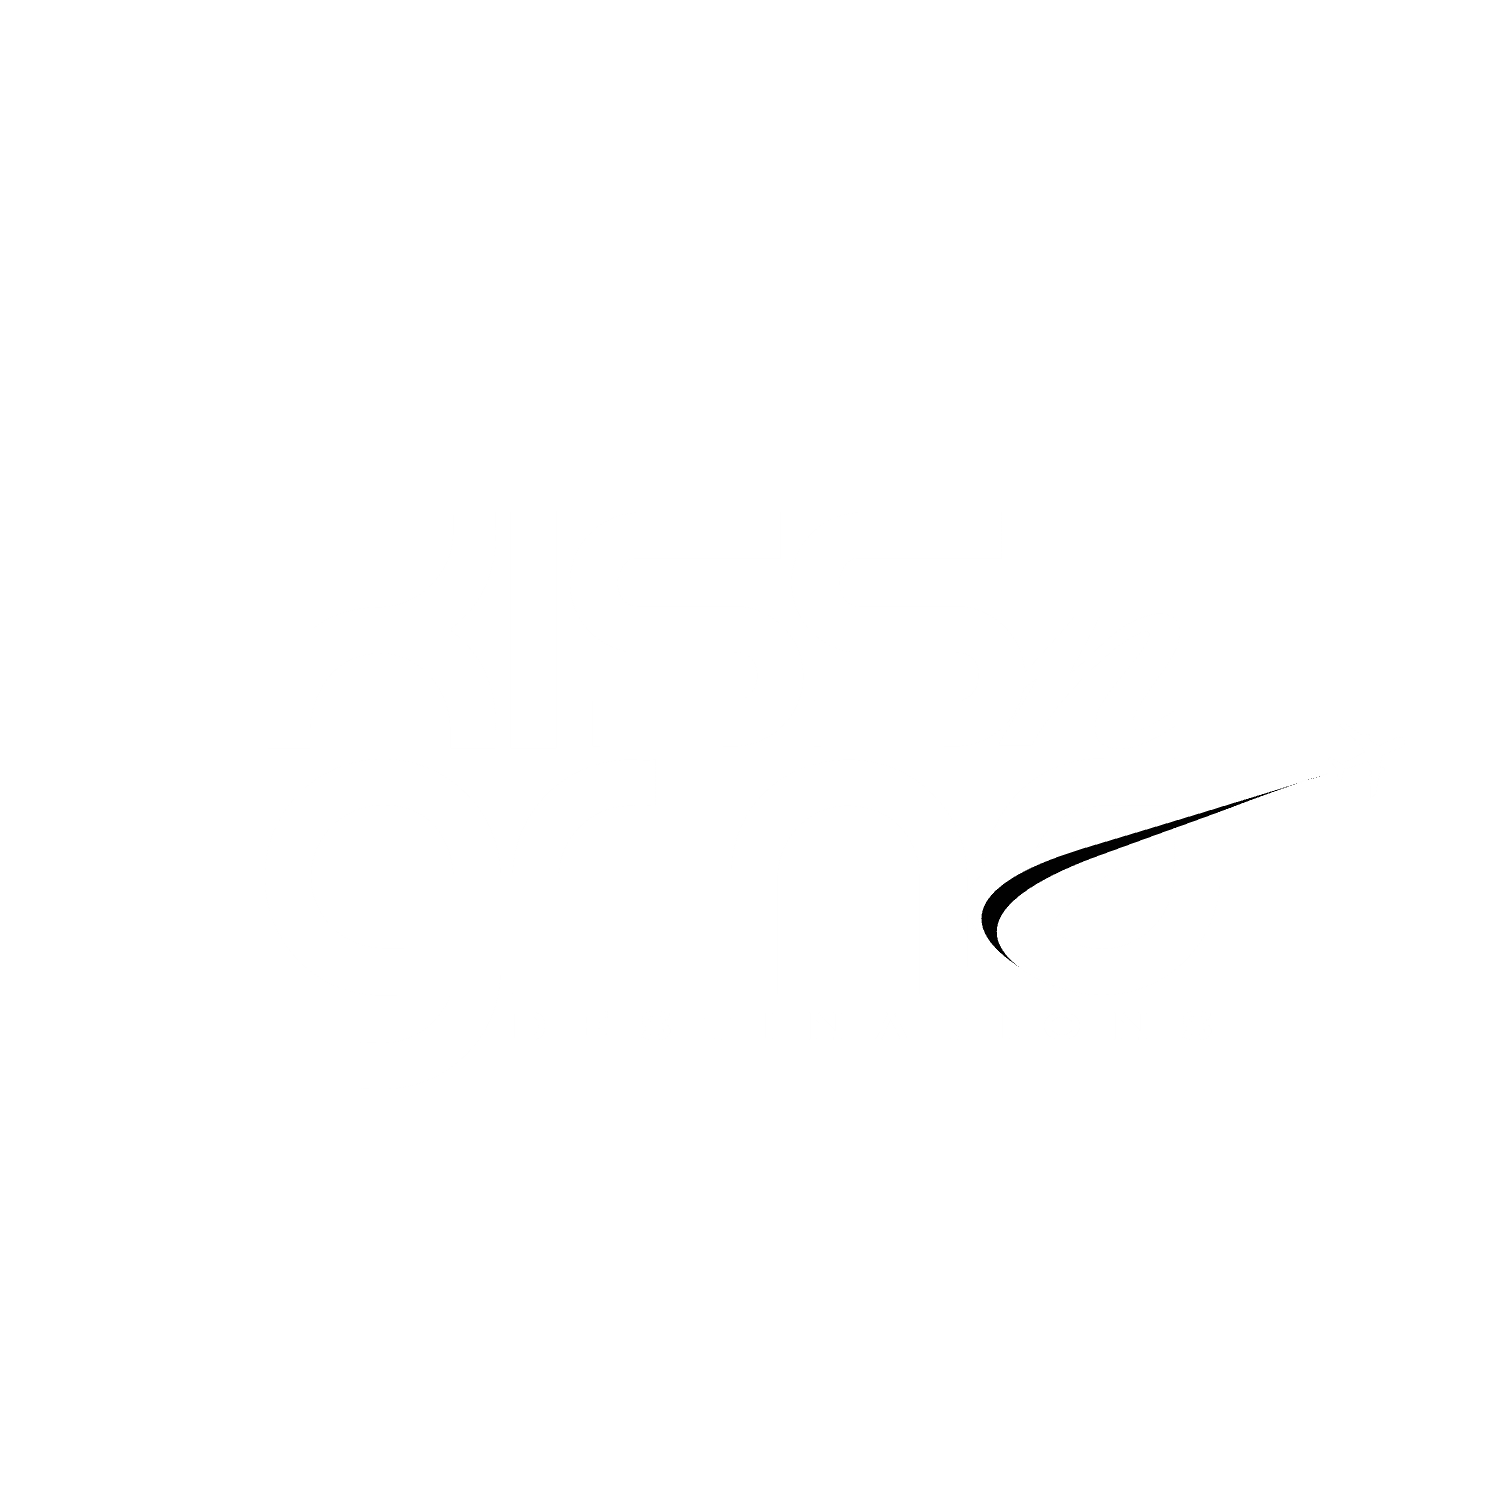 Kiss N Grind Destinations Riviera Maya Edition